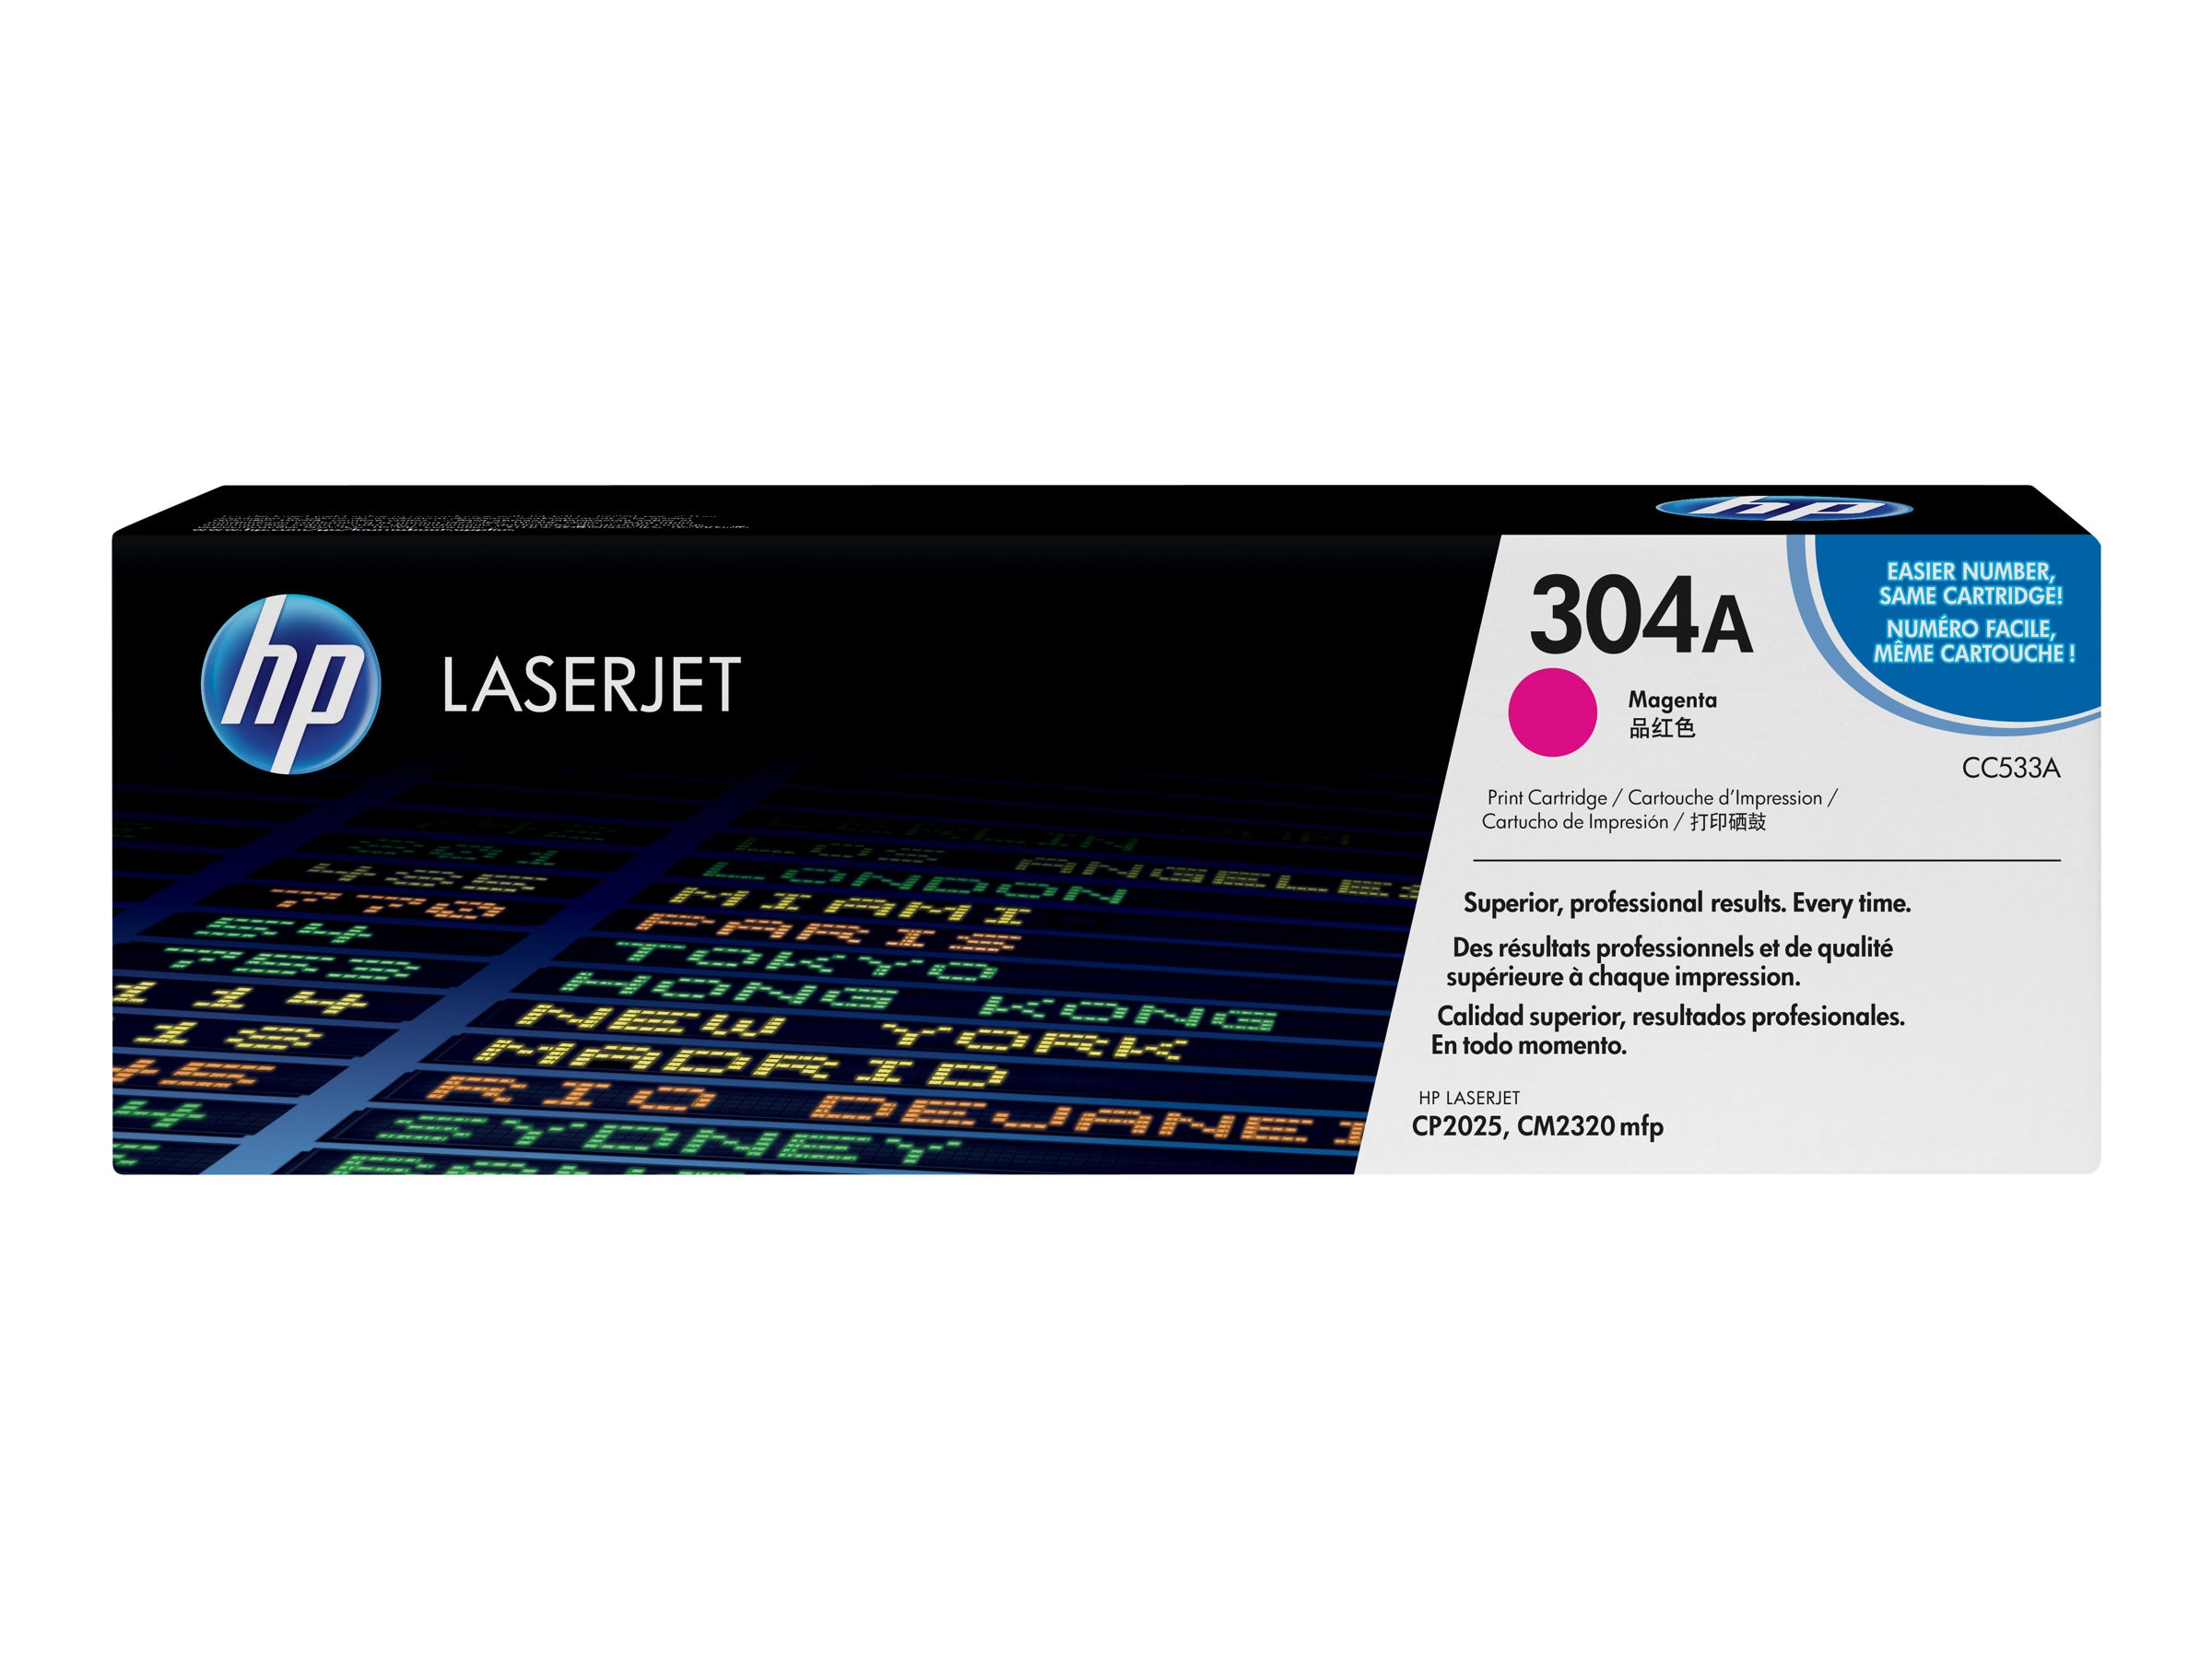 HP 304A (CC533A) Magenta Original LaserJet Toner Cartridge for HP Color LaserJet CP2025 & CM2320 MFP, CC533A, 8869018, Toner and Imaging Components